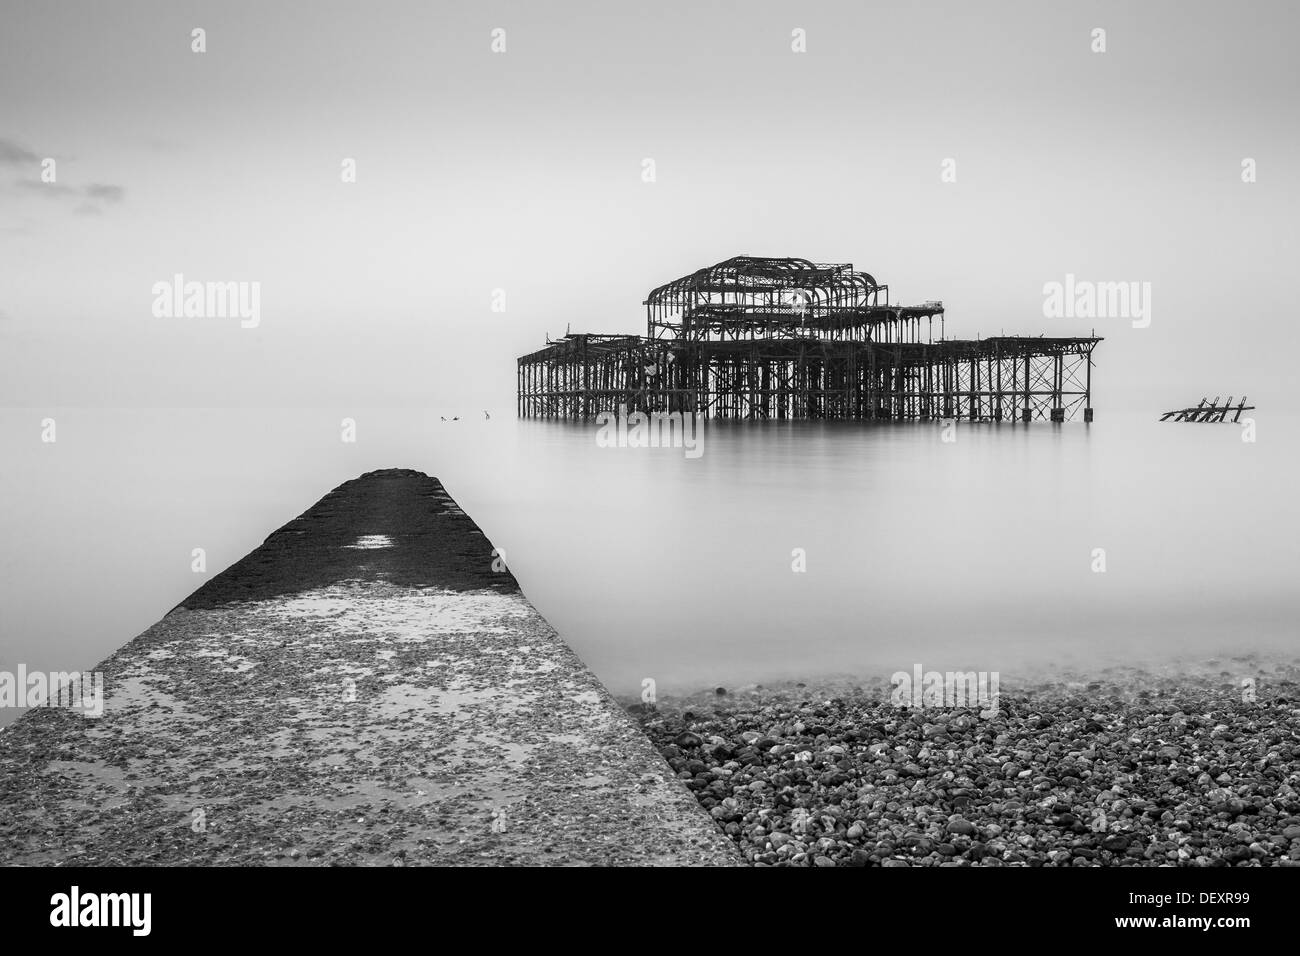 Jetée de l'Ouest, Brighton, Sussex, Angleterre, Royaume-Uni, Europe Photo Stock